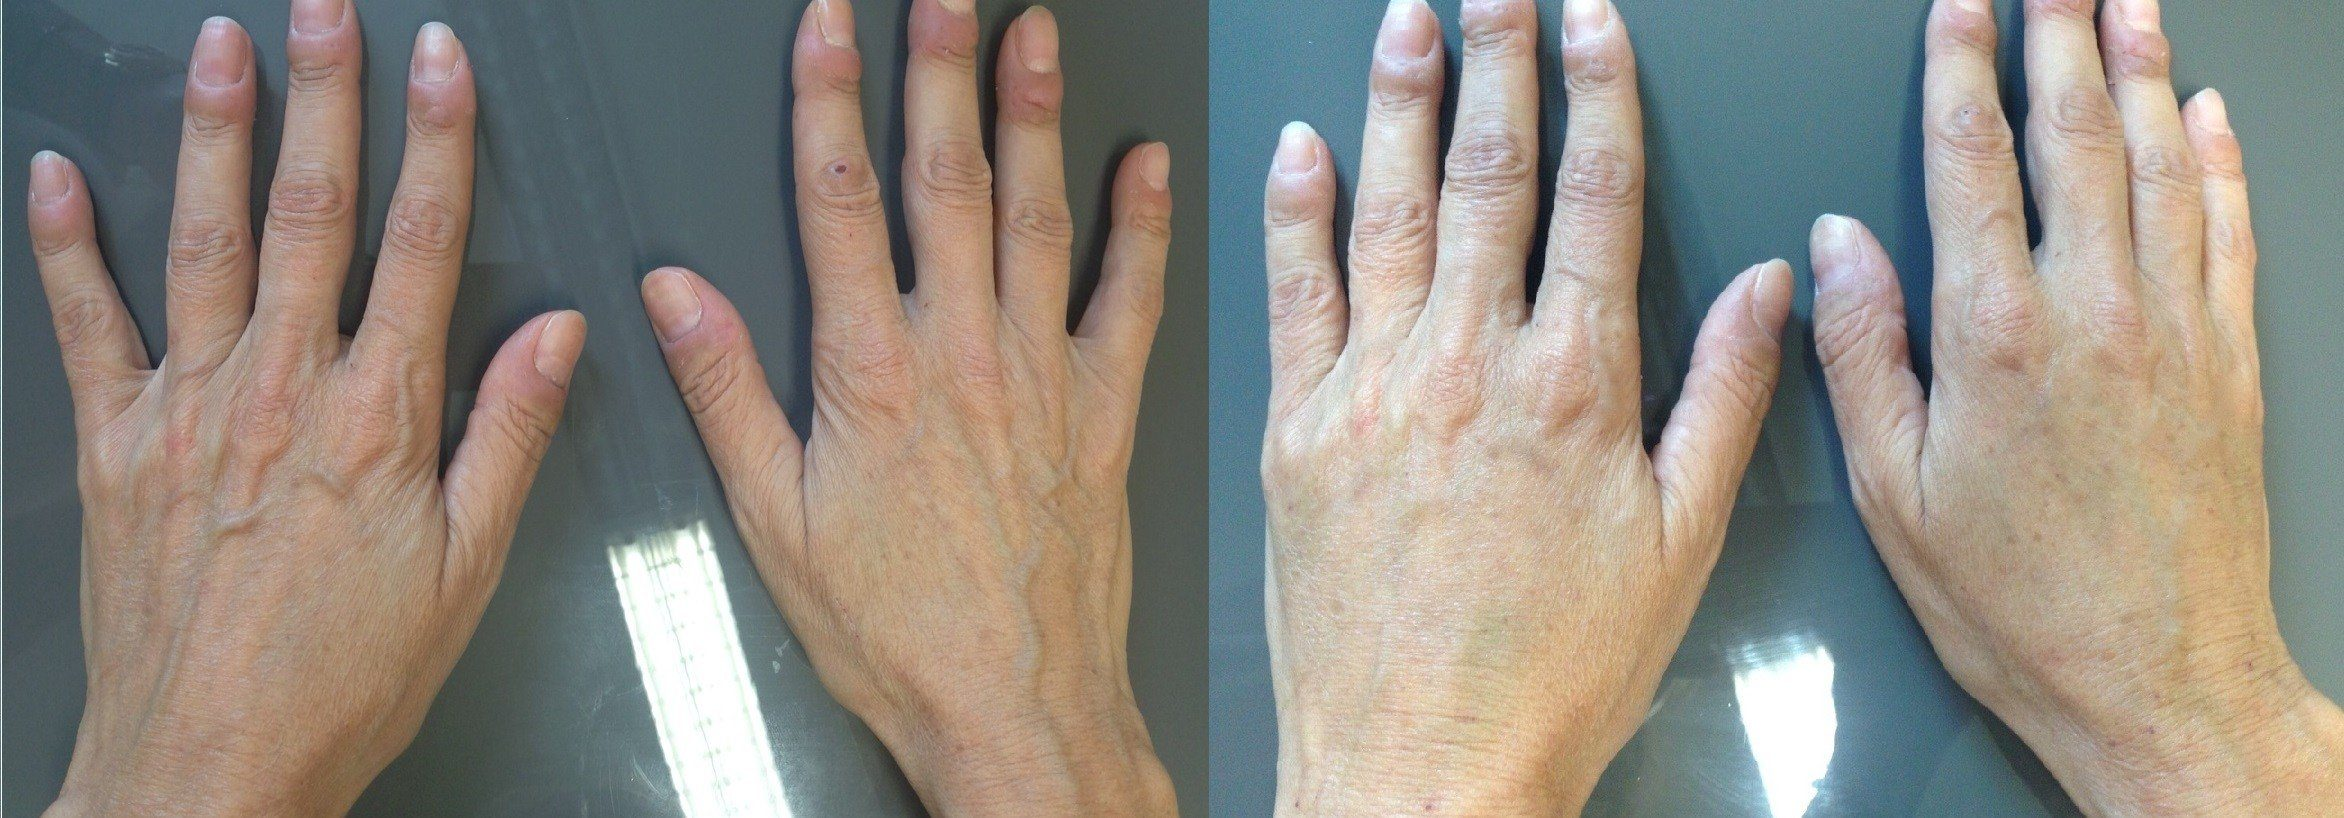 Hands after the treatment SEFFI lipo-filling.